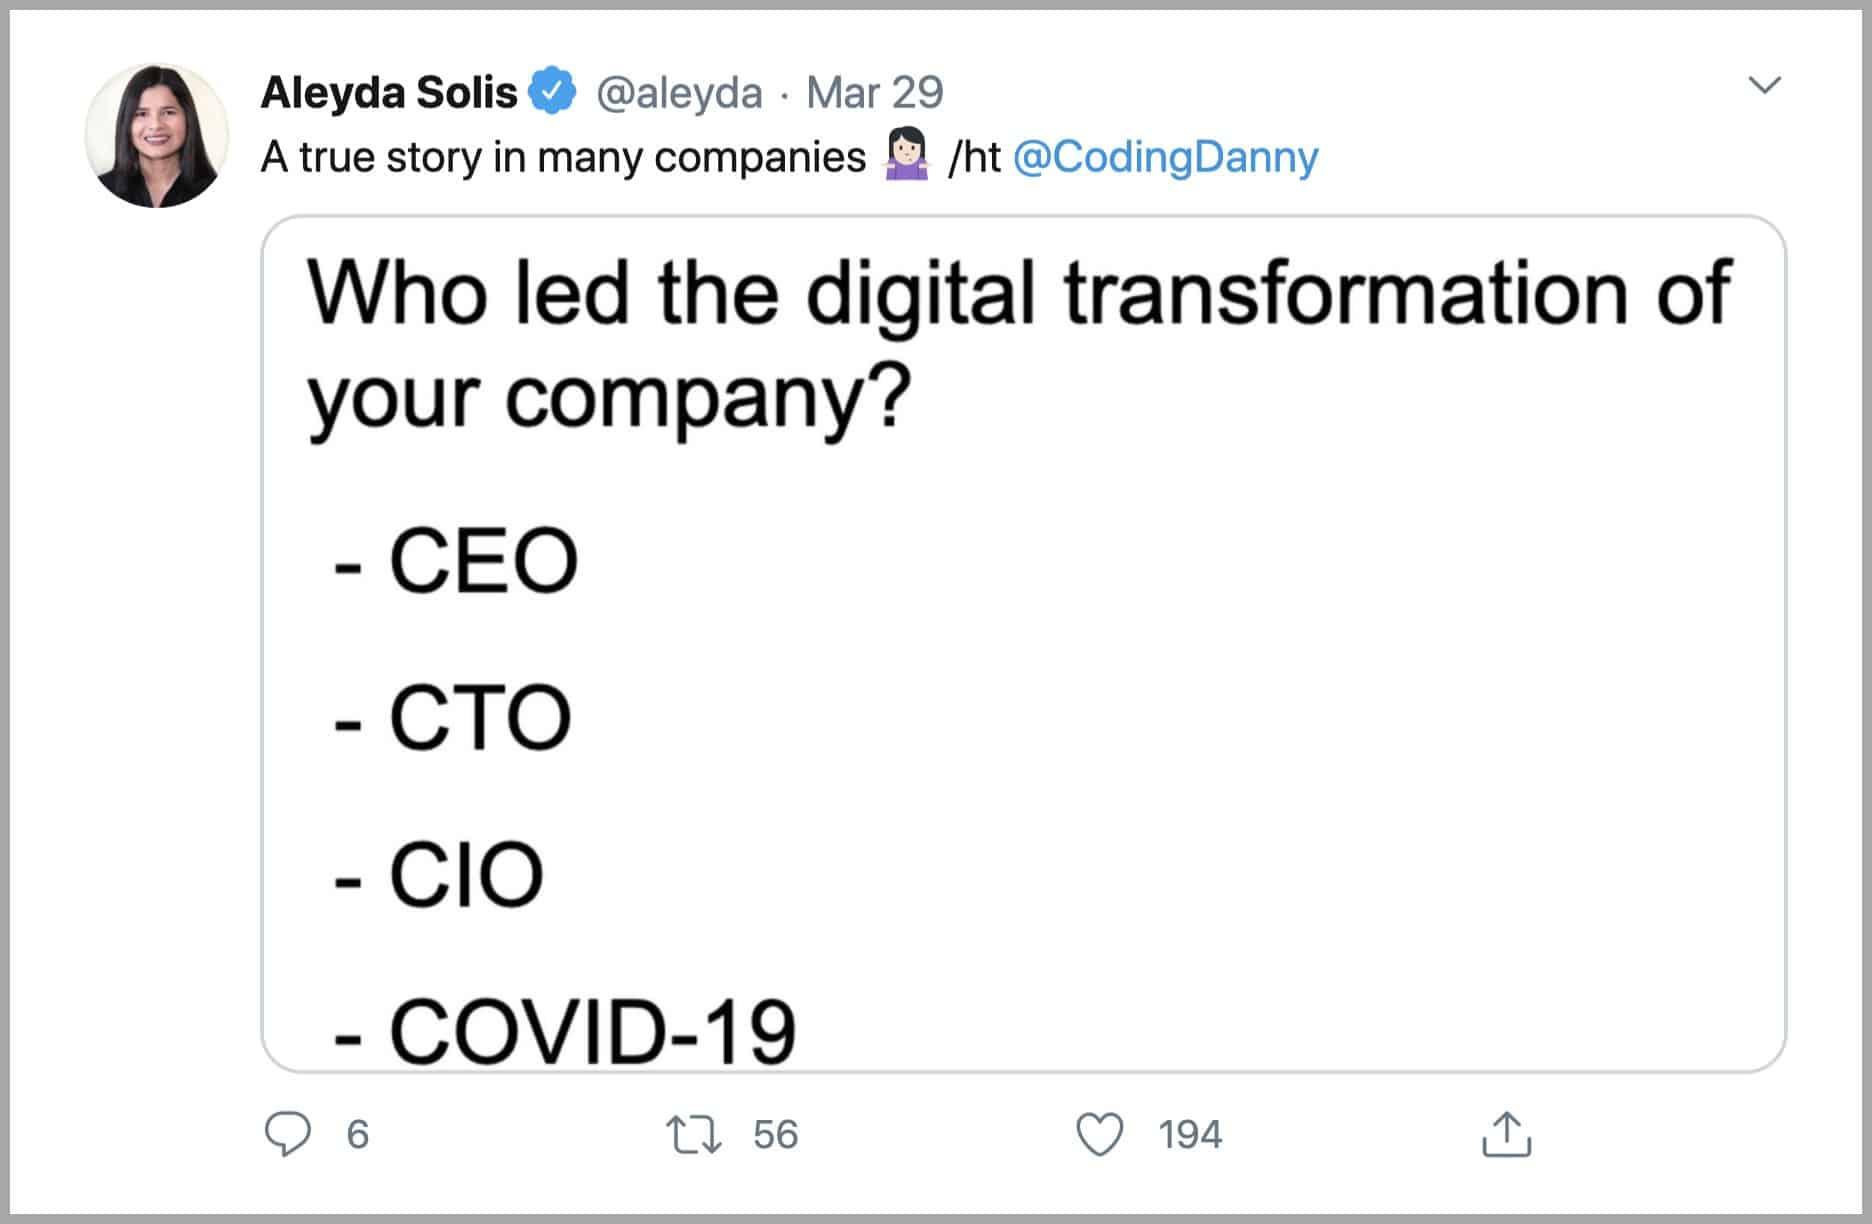 screenshot of tweet from aleyda solis showing question of who led the digital transformation of your company with ceo cto cio and covid-19 as answer options